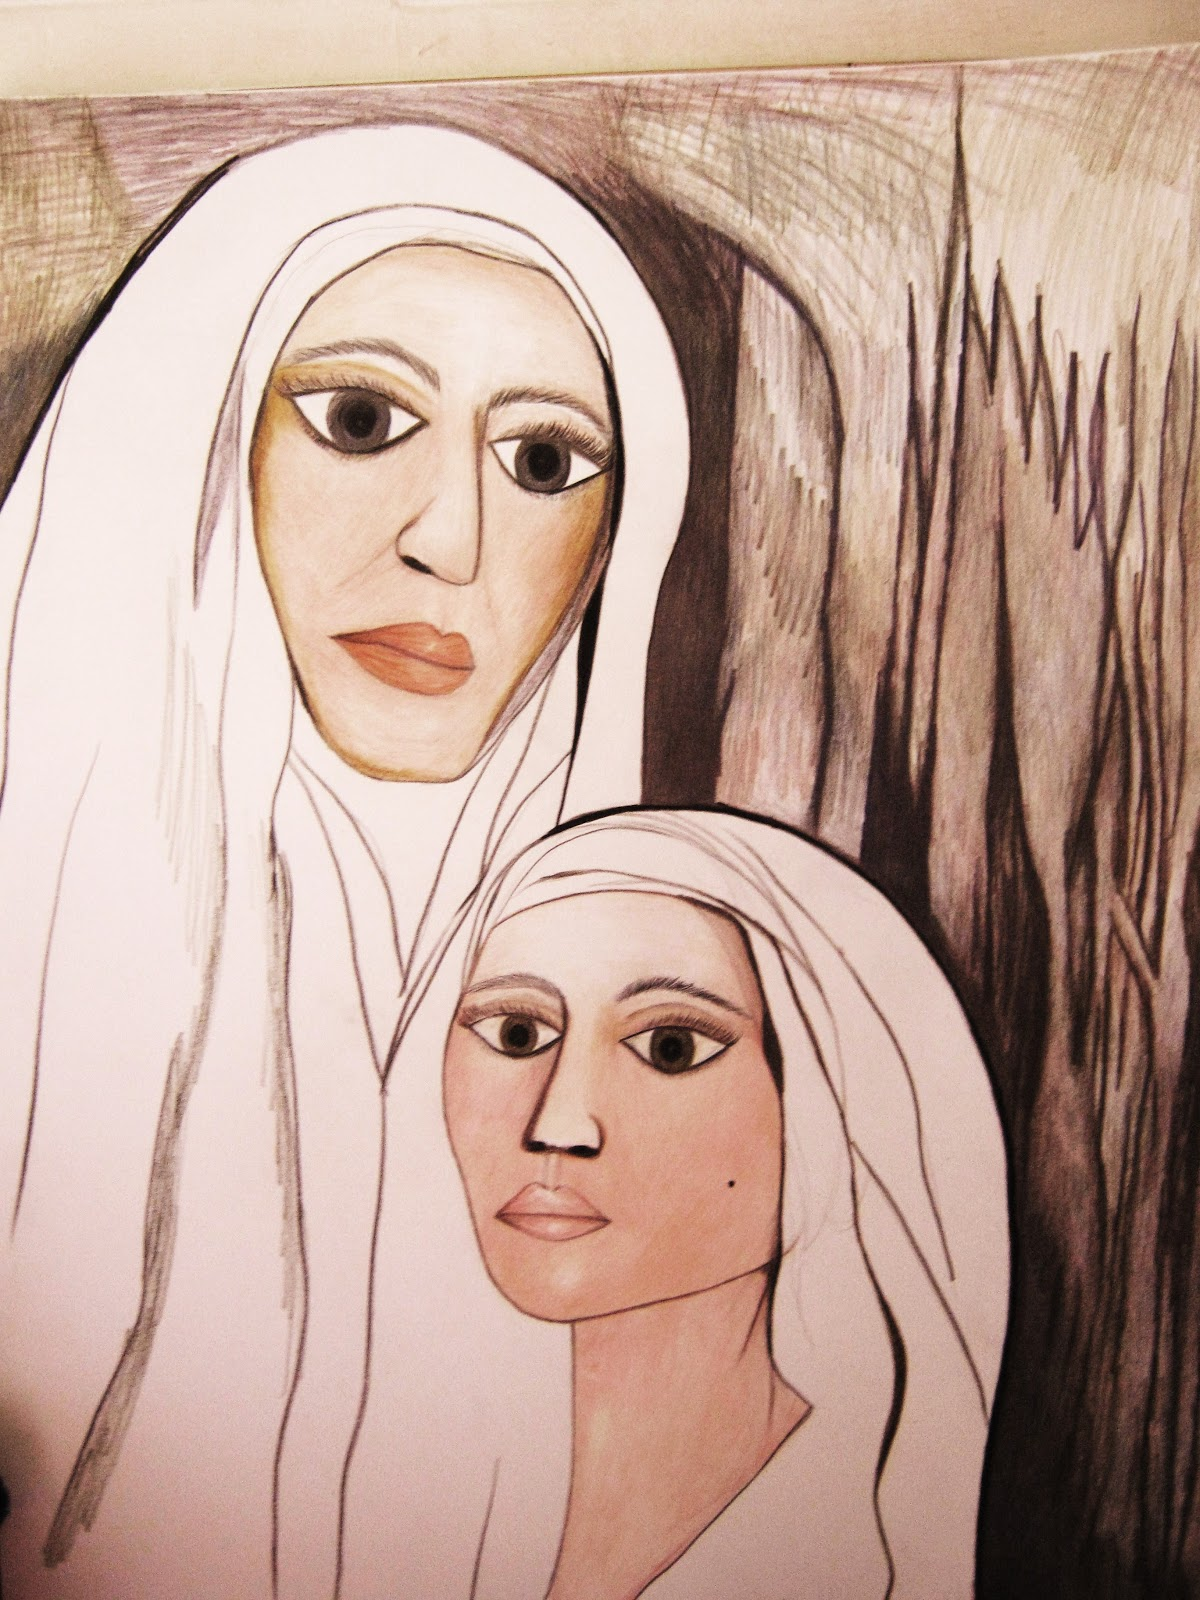 What Happened to Mary Magdalene?